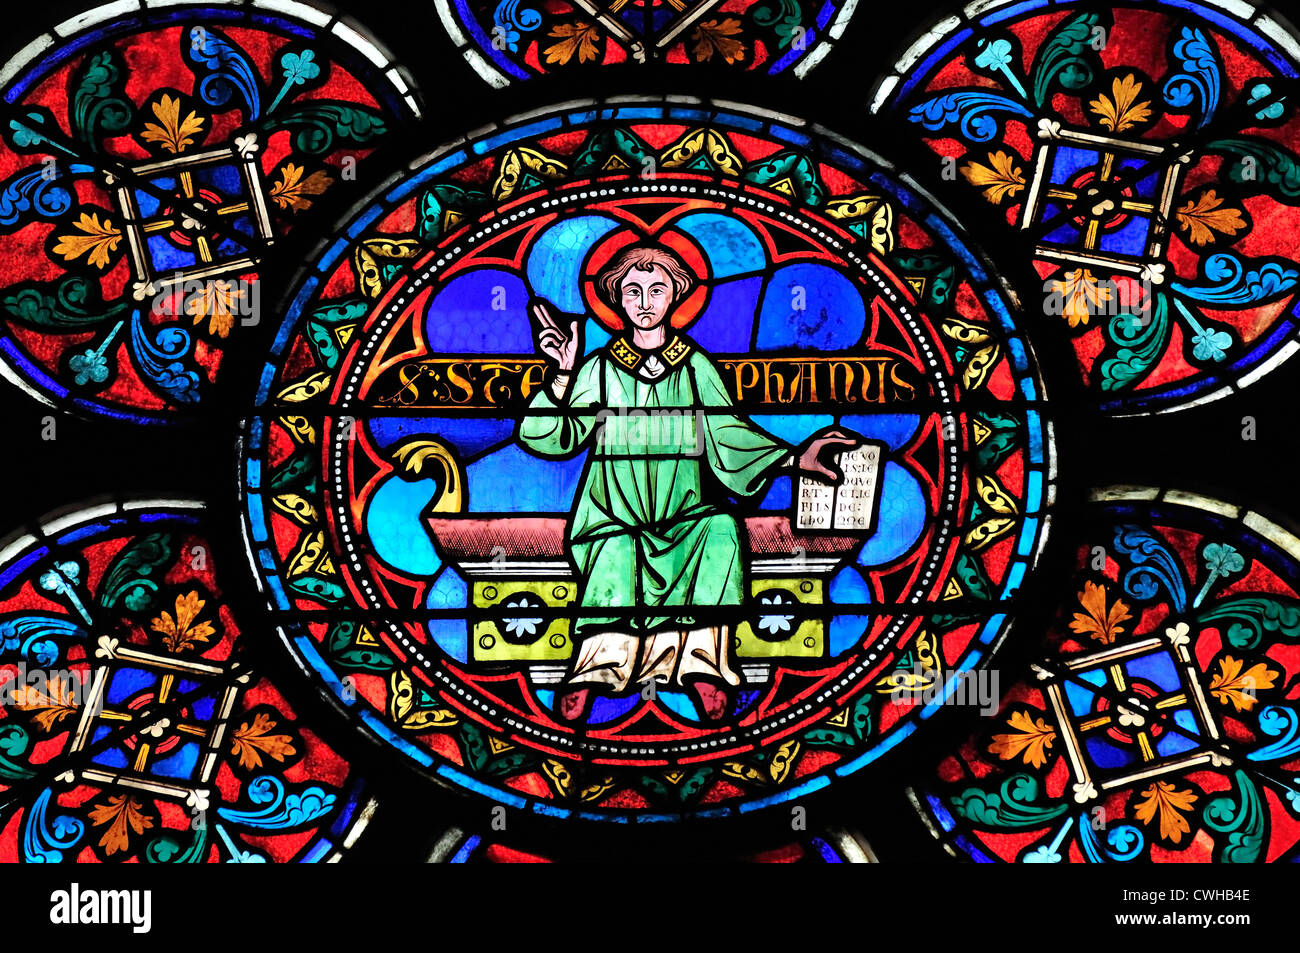 notre dame stained glass windows images